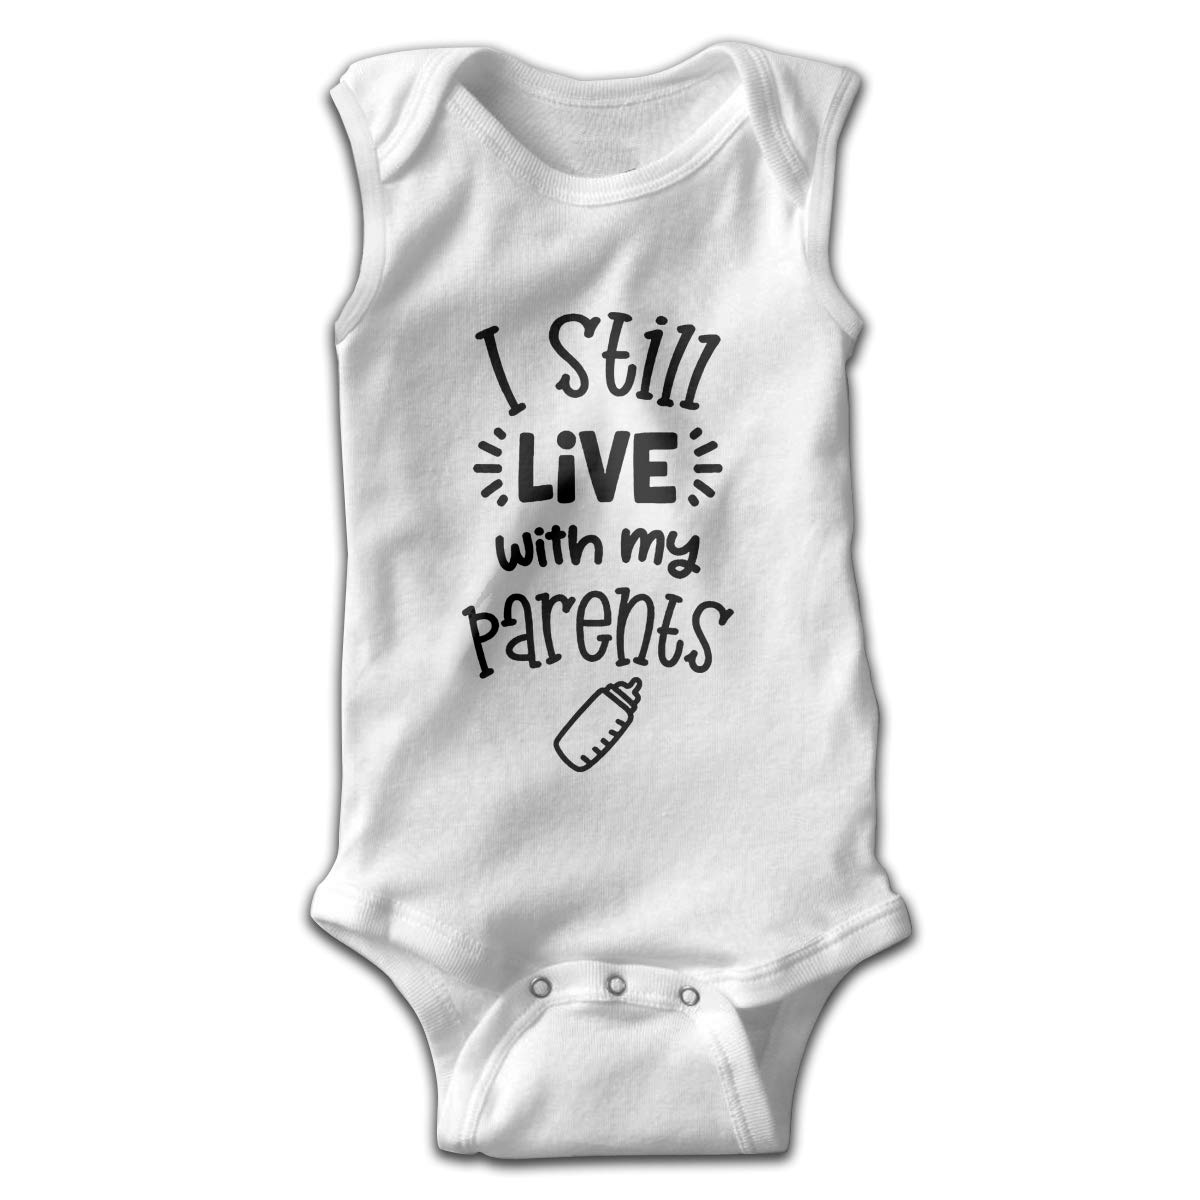 I Still Live with My Parents Infant Baby Clothes Onesie Sleeveless Summer Novelty Funny Gift for Baby